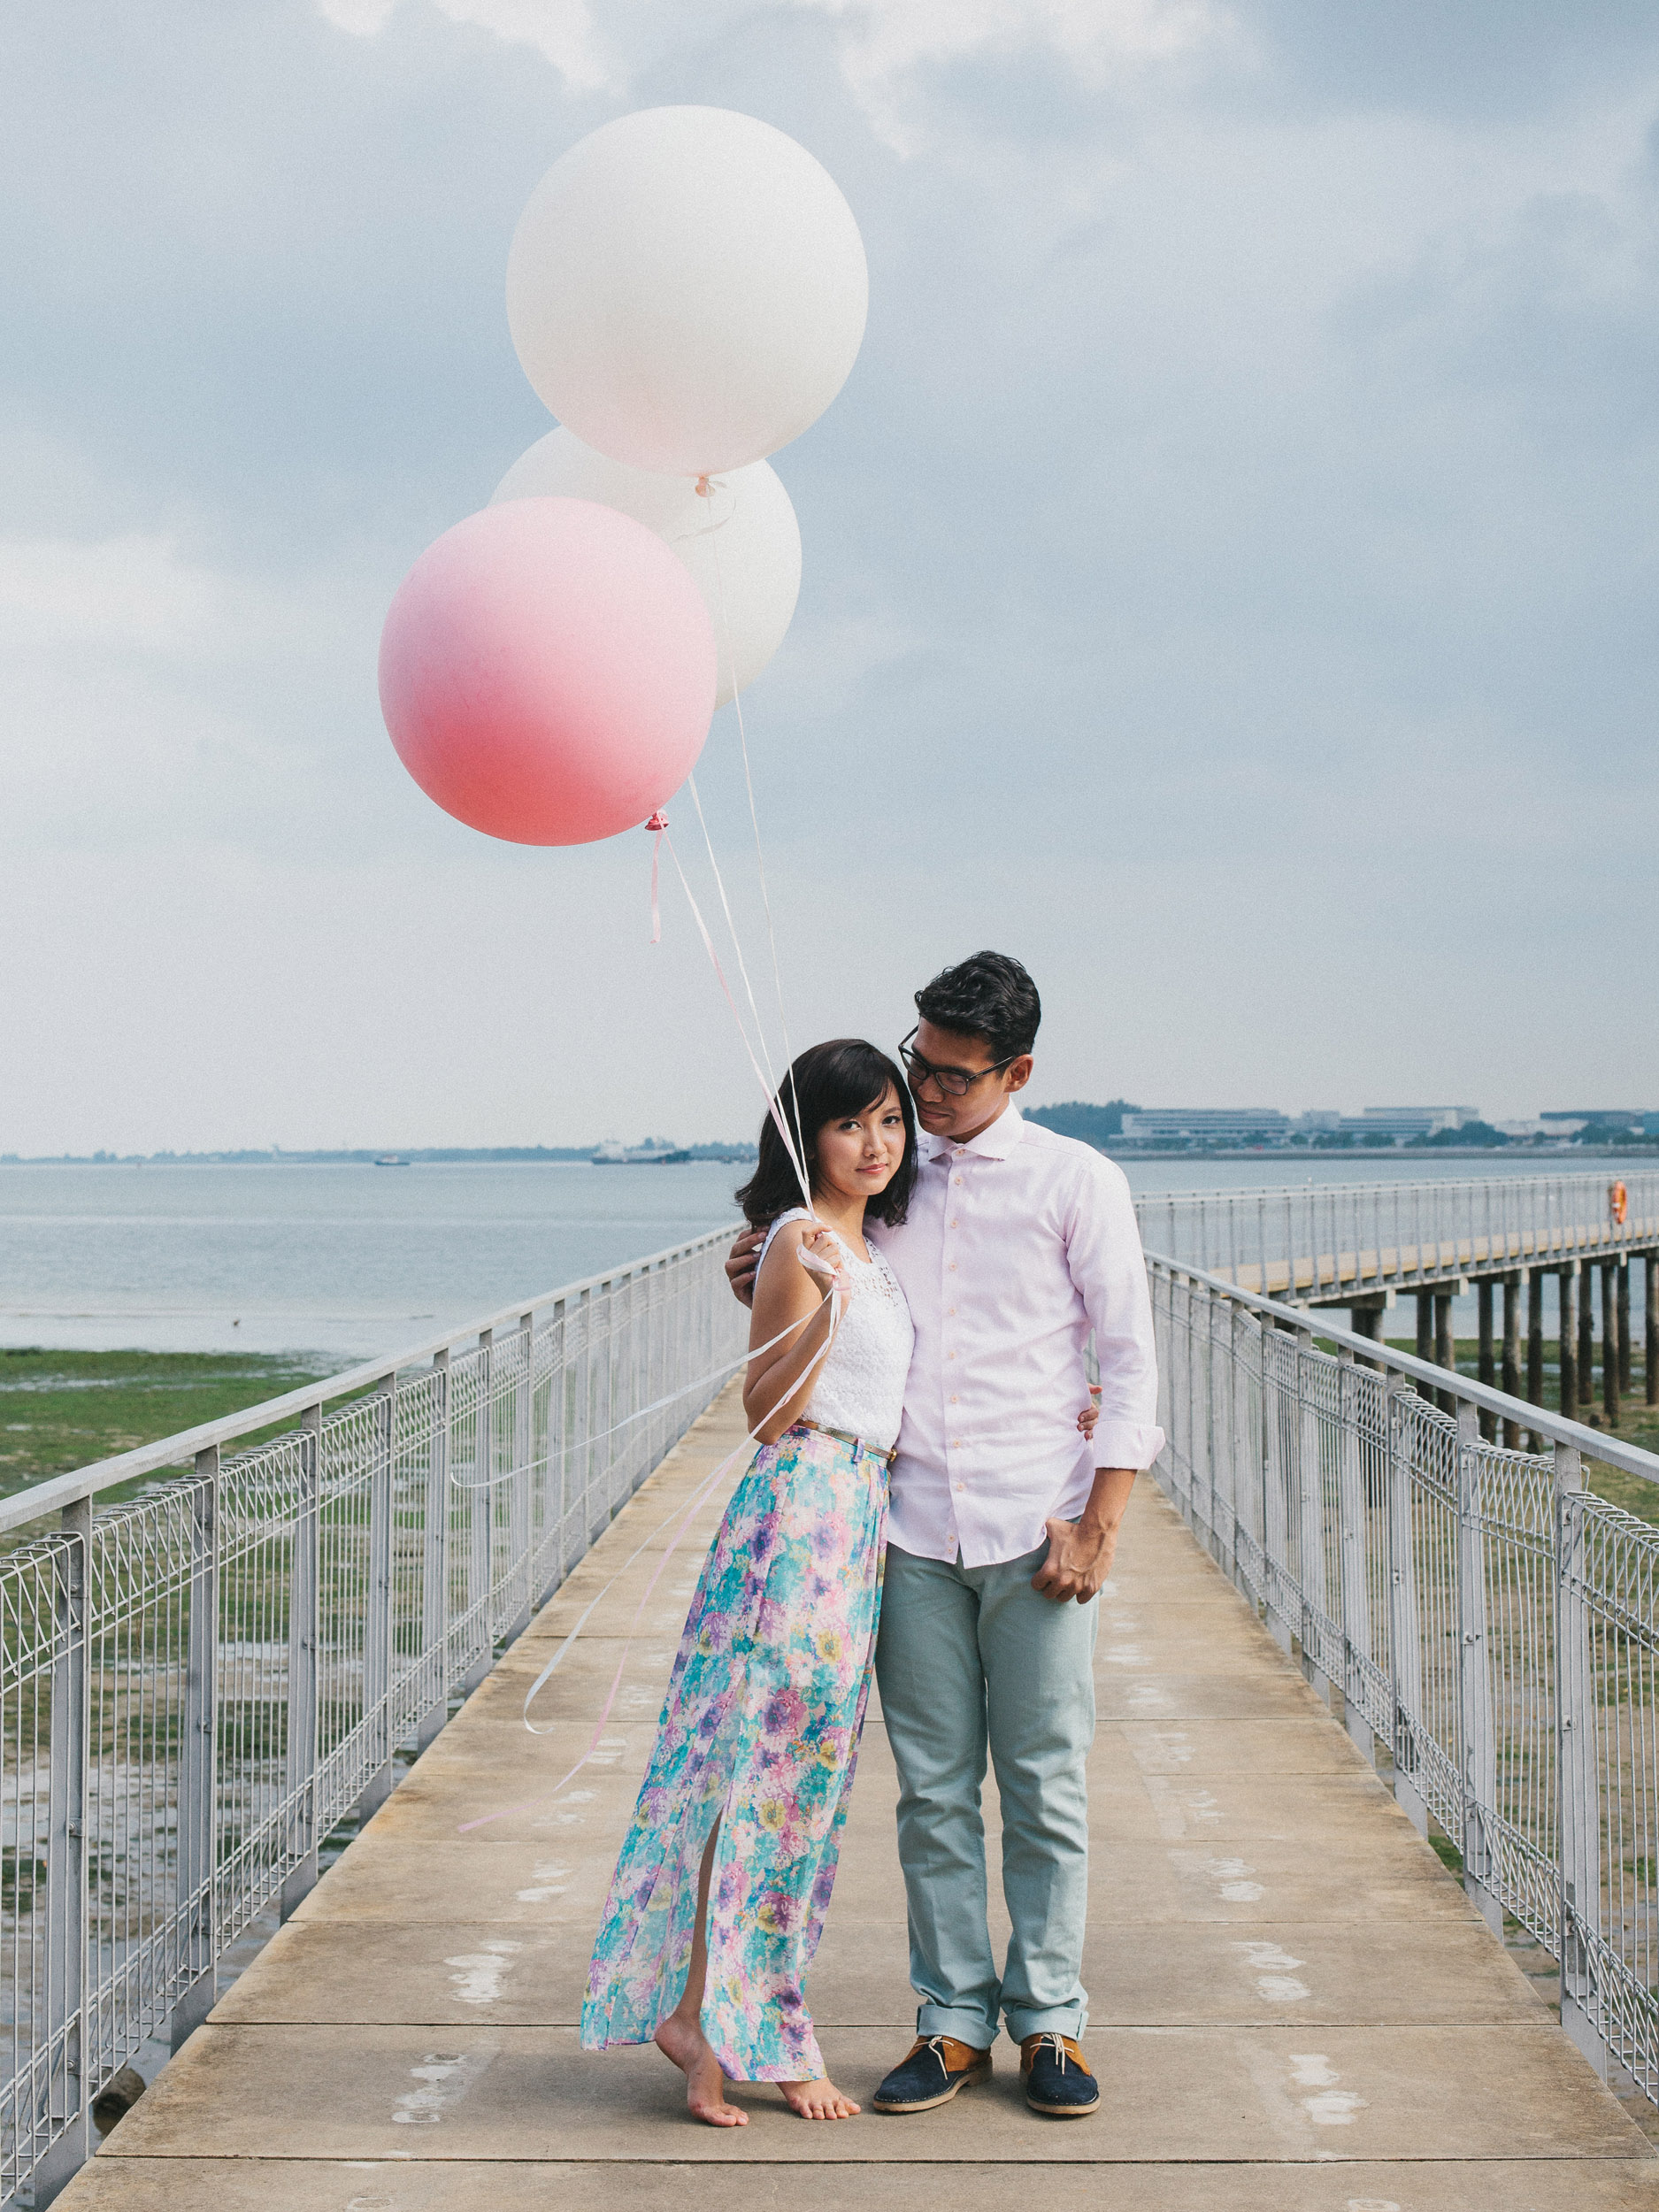 singapore-wedding-photographer-wemadethese-adib-mizah-2012-sessions-026.jpg